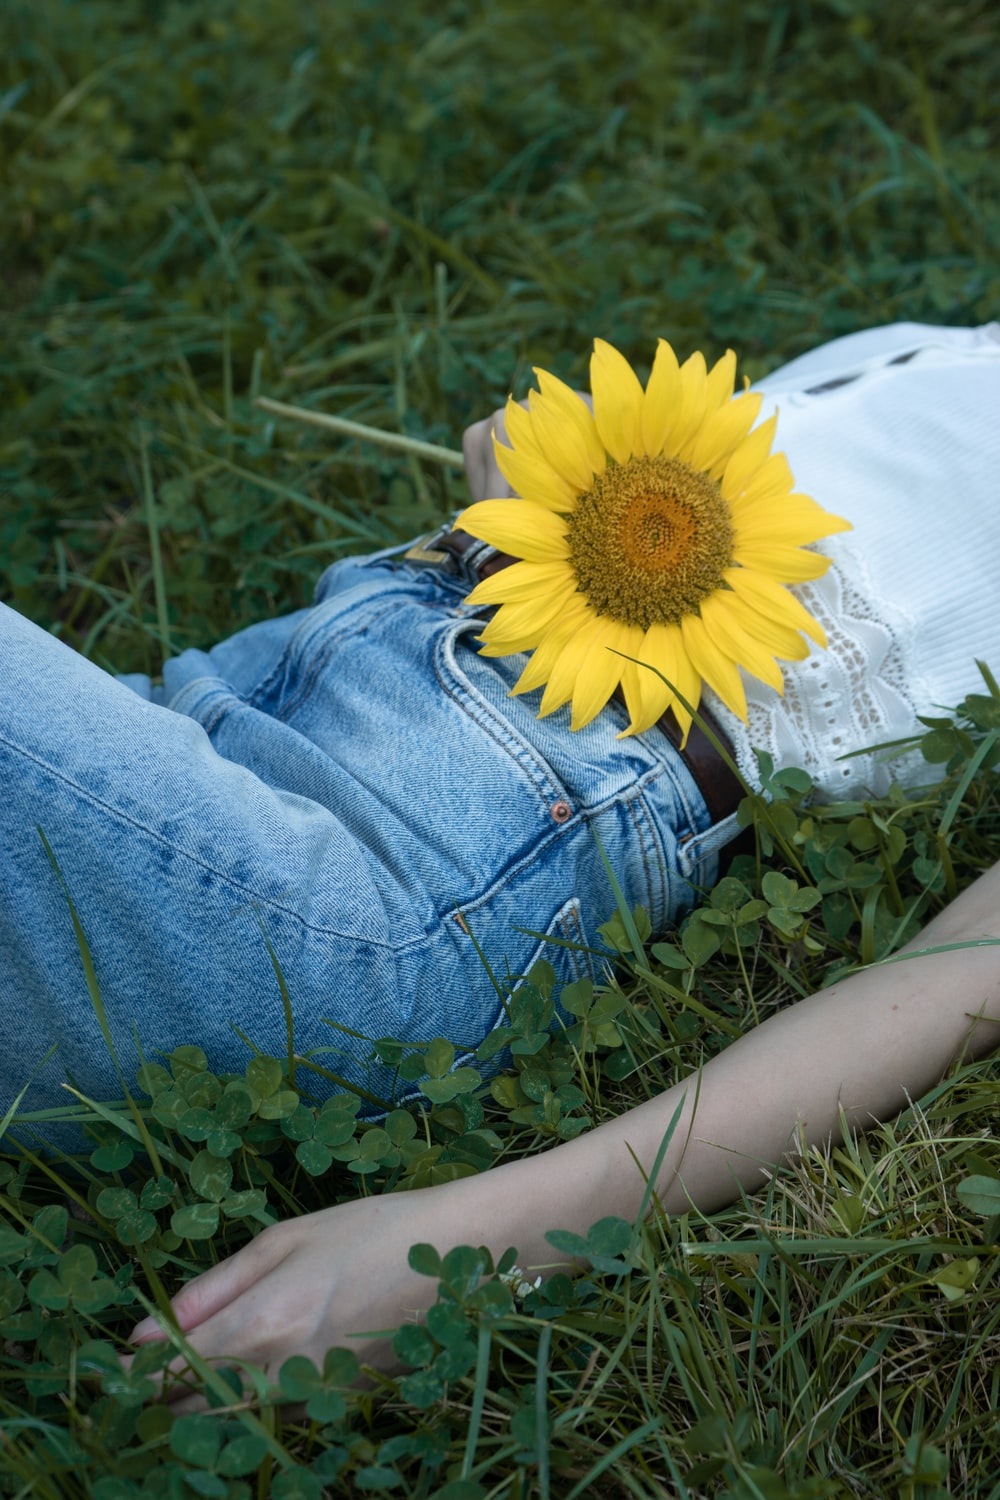 person in blue denim jeans sitting on white textile with yellow sunflower on her lap